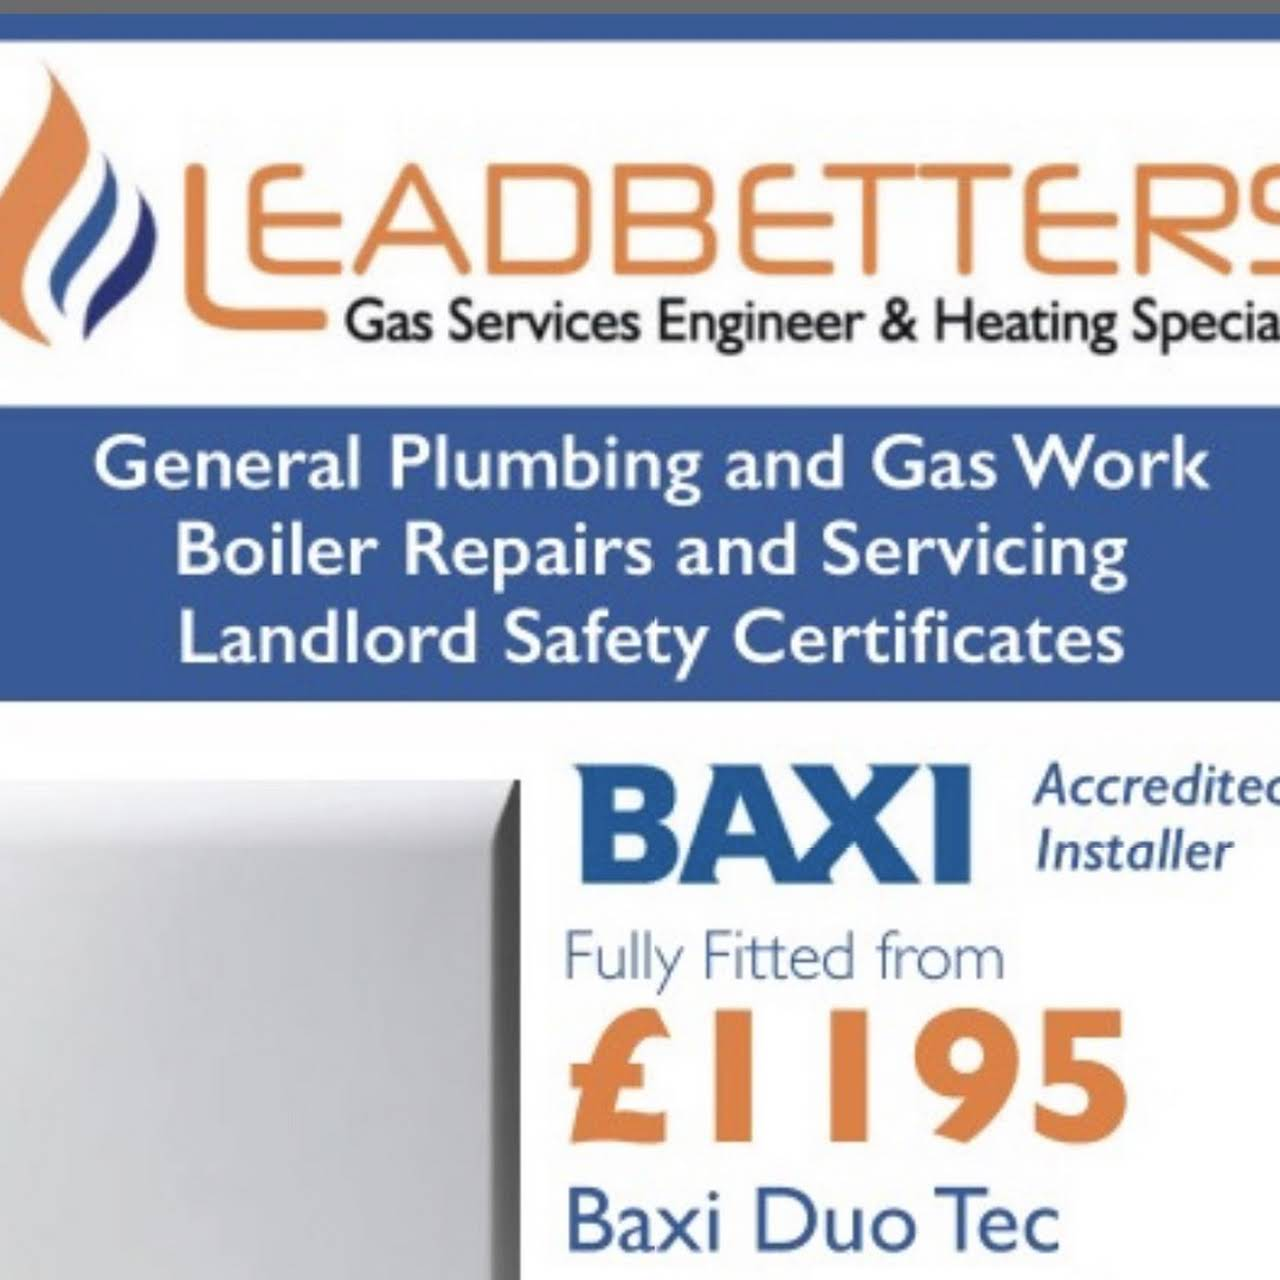 Leadbetters Gas Services Engineer